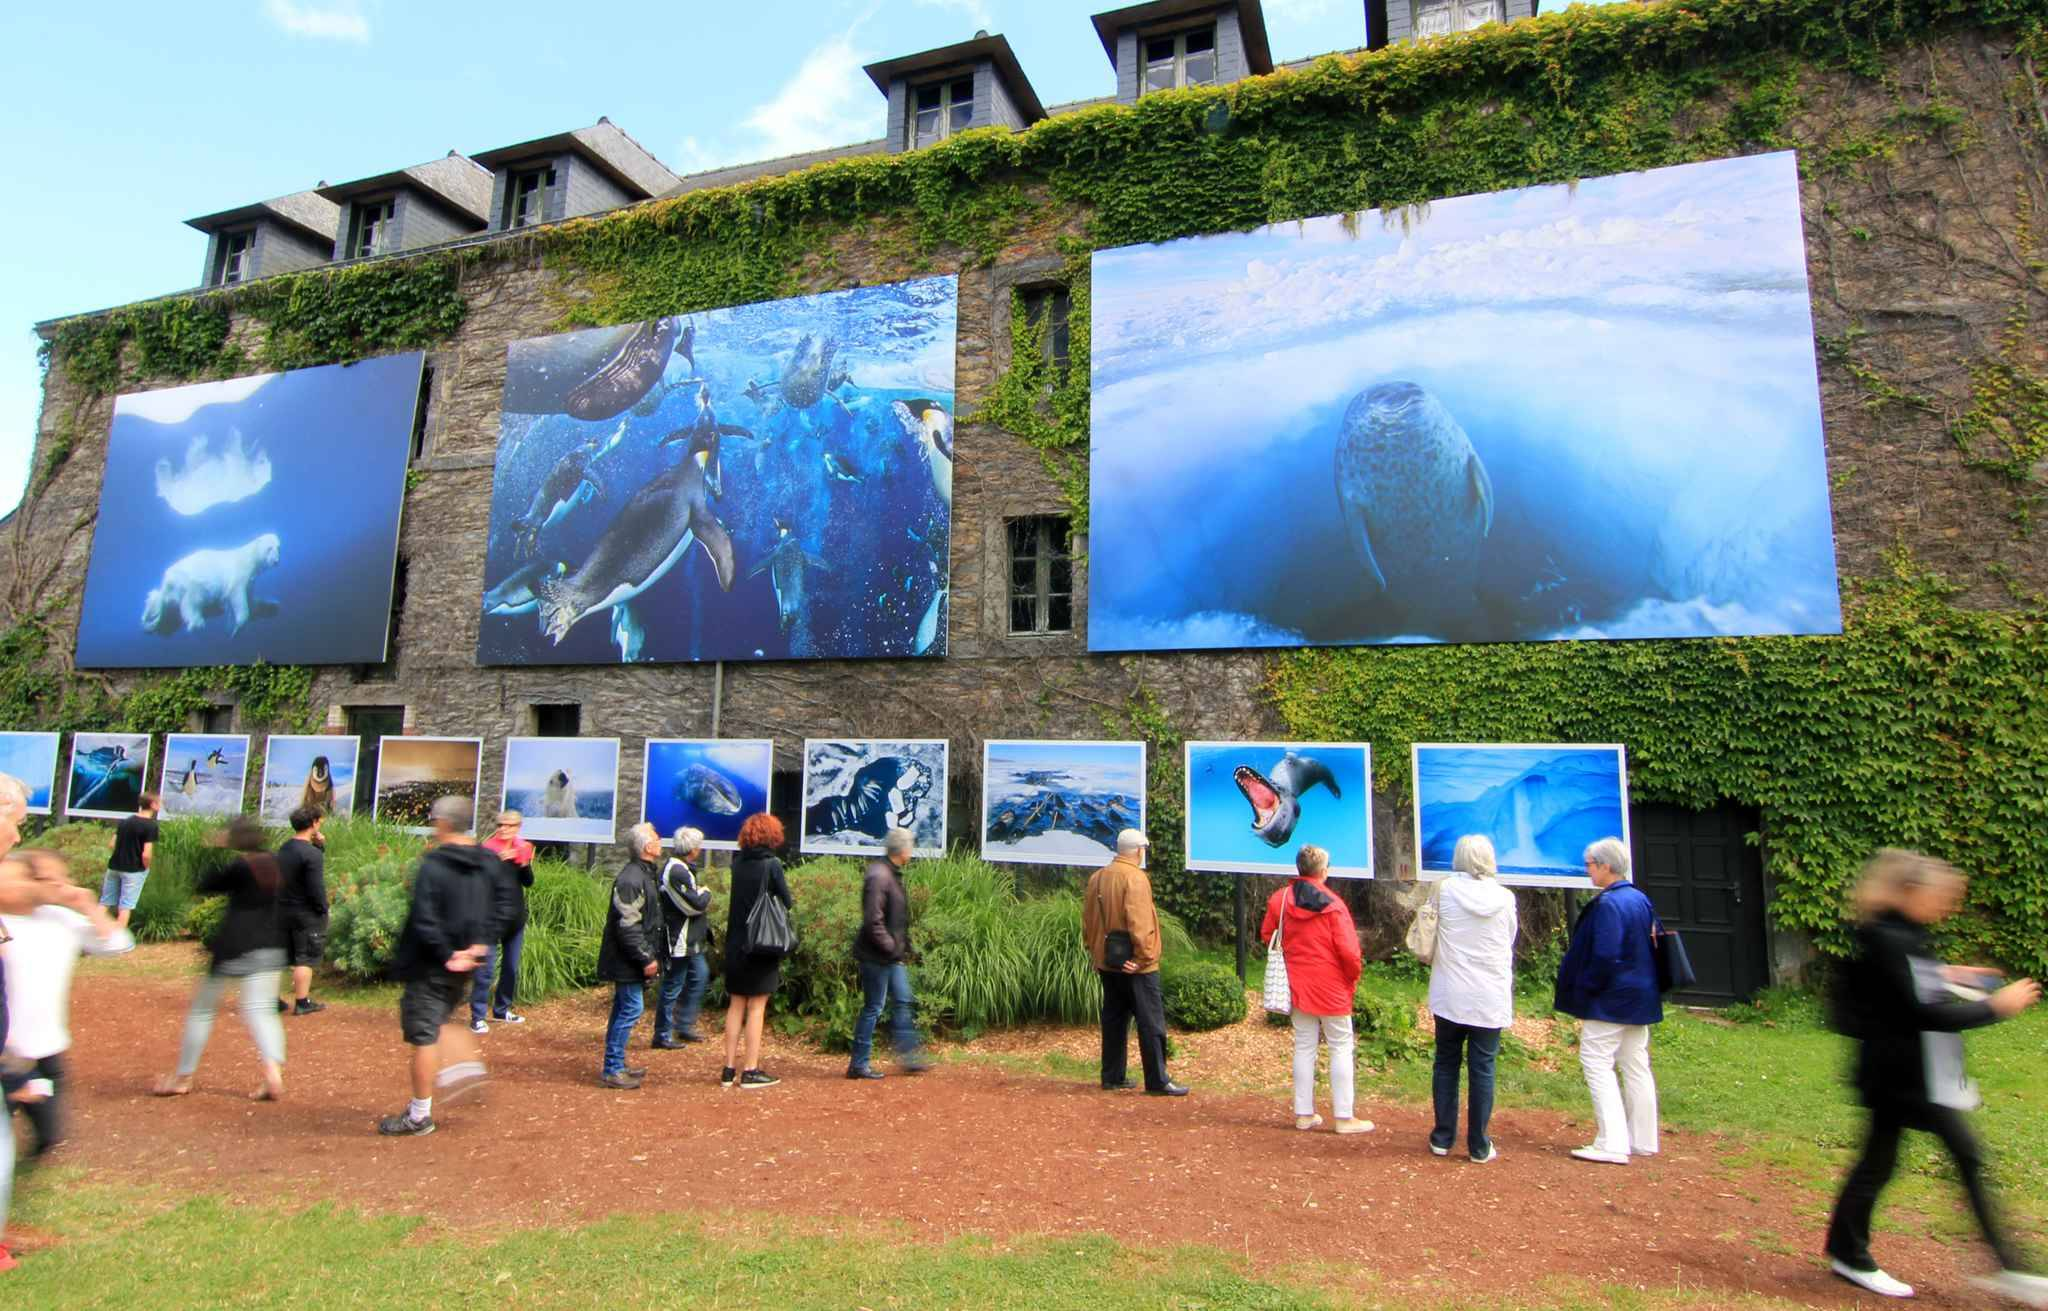 Bretagne record historique pour le festival photo de la gacilly - Festival photo la gacilly ...